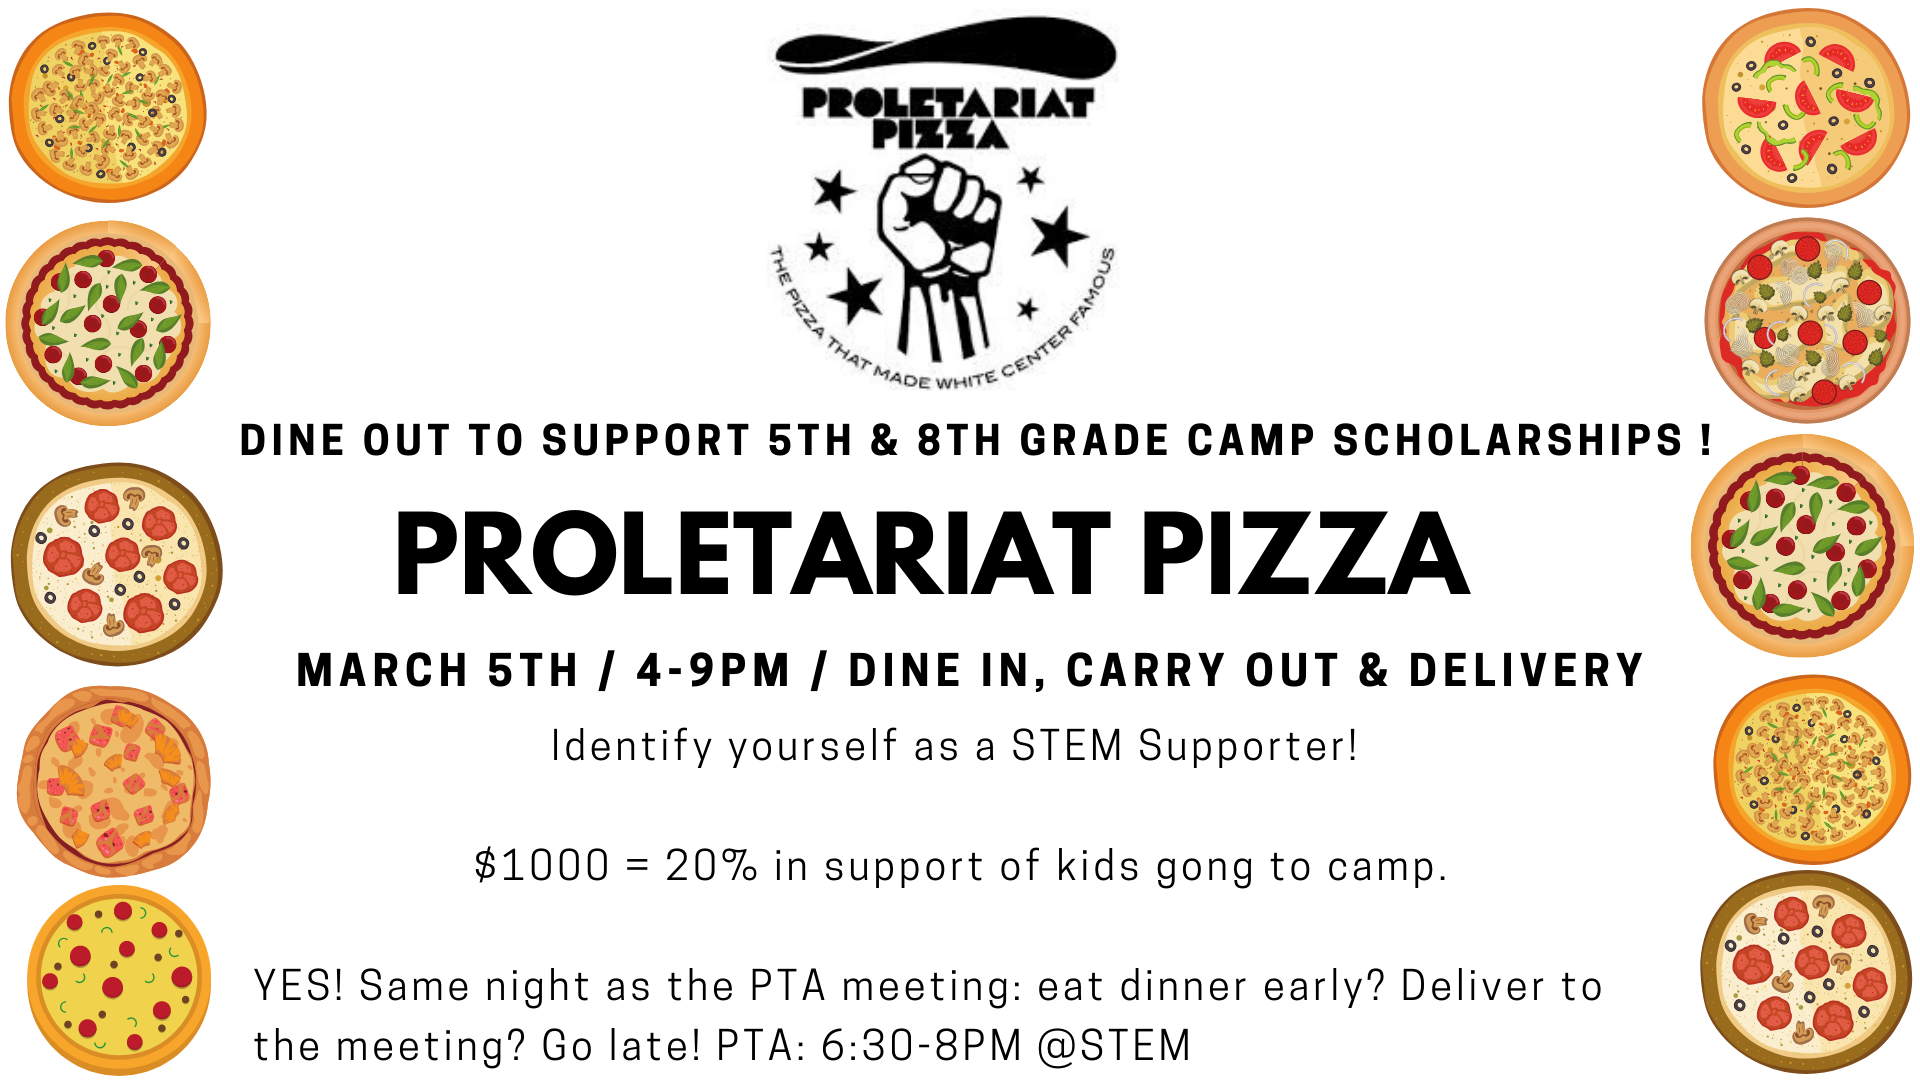 Proletariat Pizza Dine out fundraiser @ Proletariat Pizza